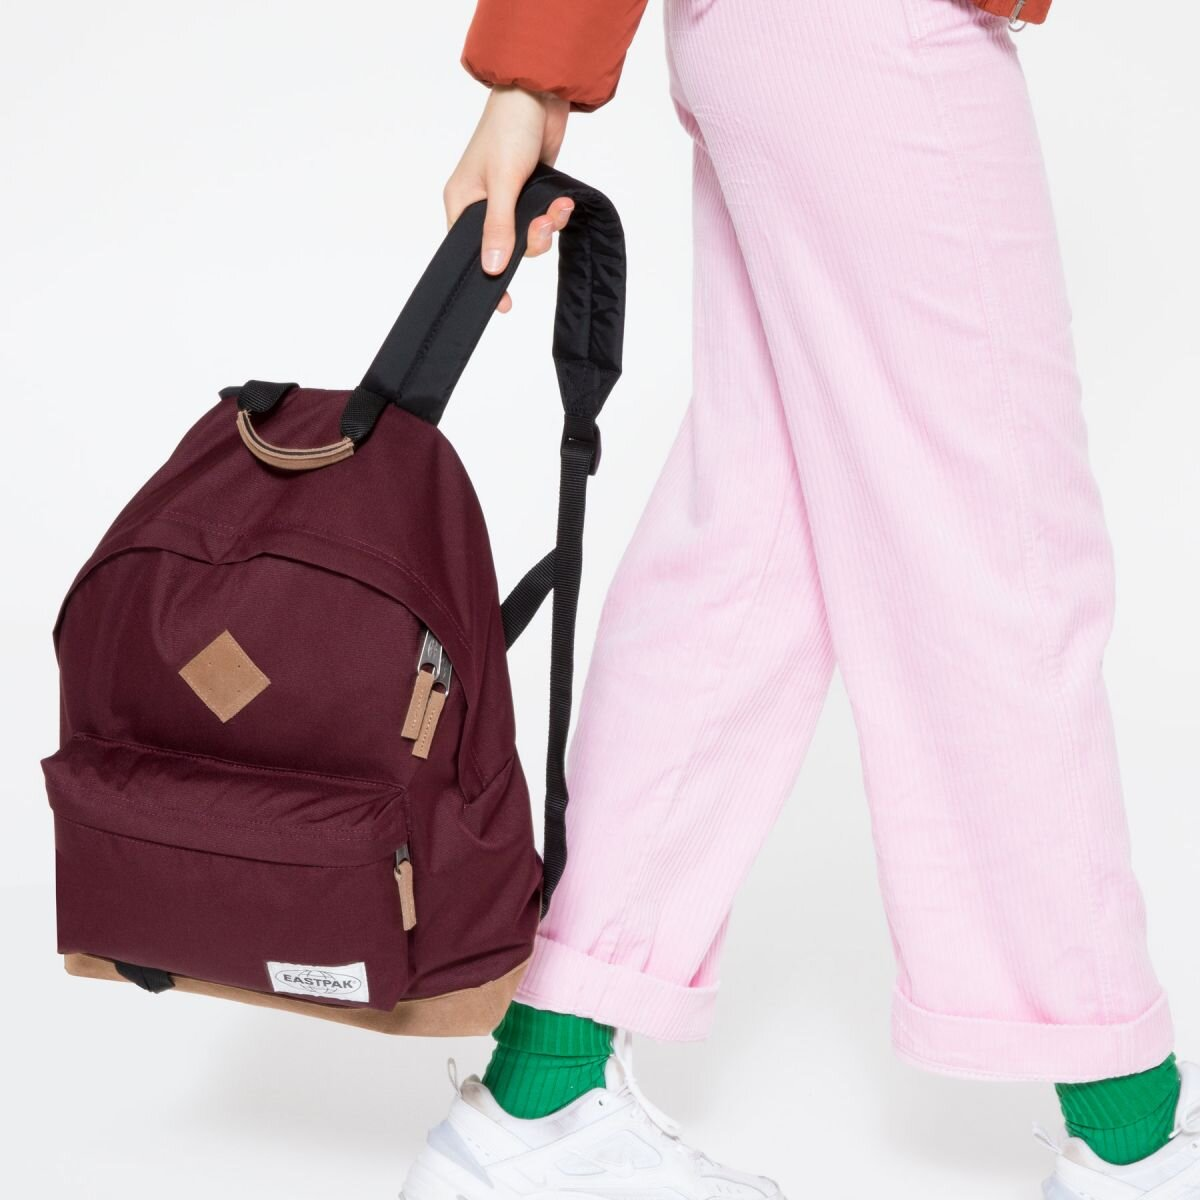 Eastpak Wyoming Backpack In Wine Cary Lane